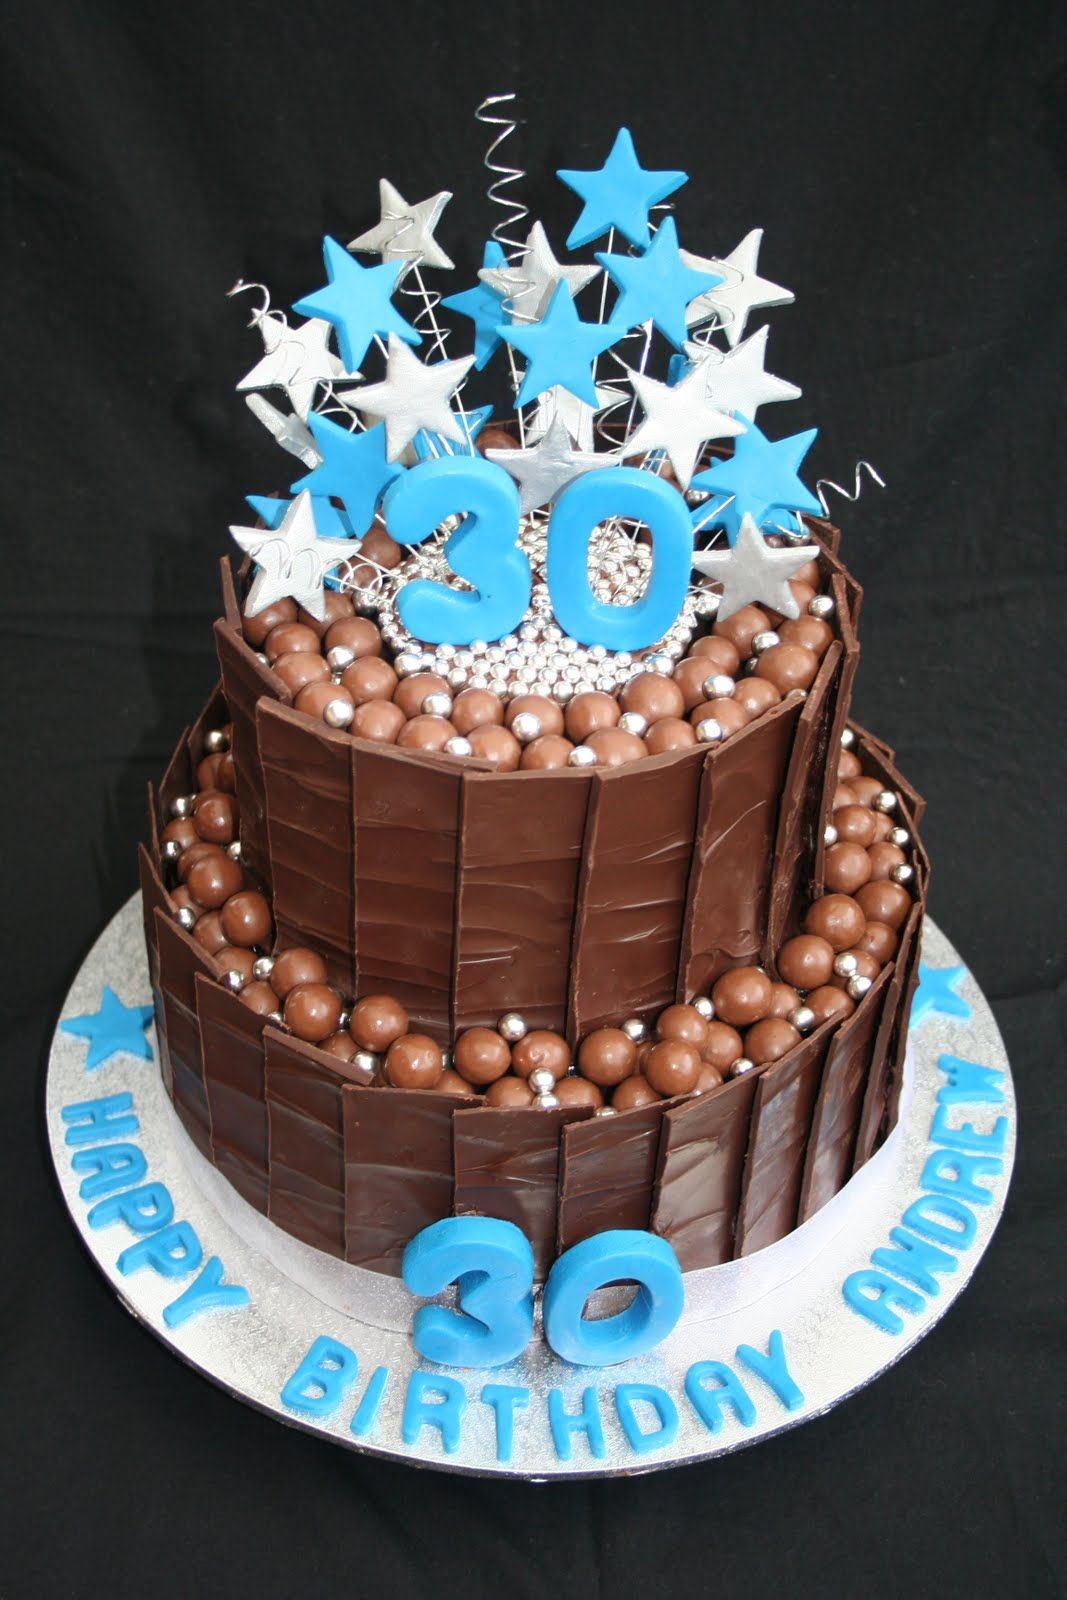 30th birthday cakes leonie 39 s cakes and parties for 30th birthday cake decoration ideas